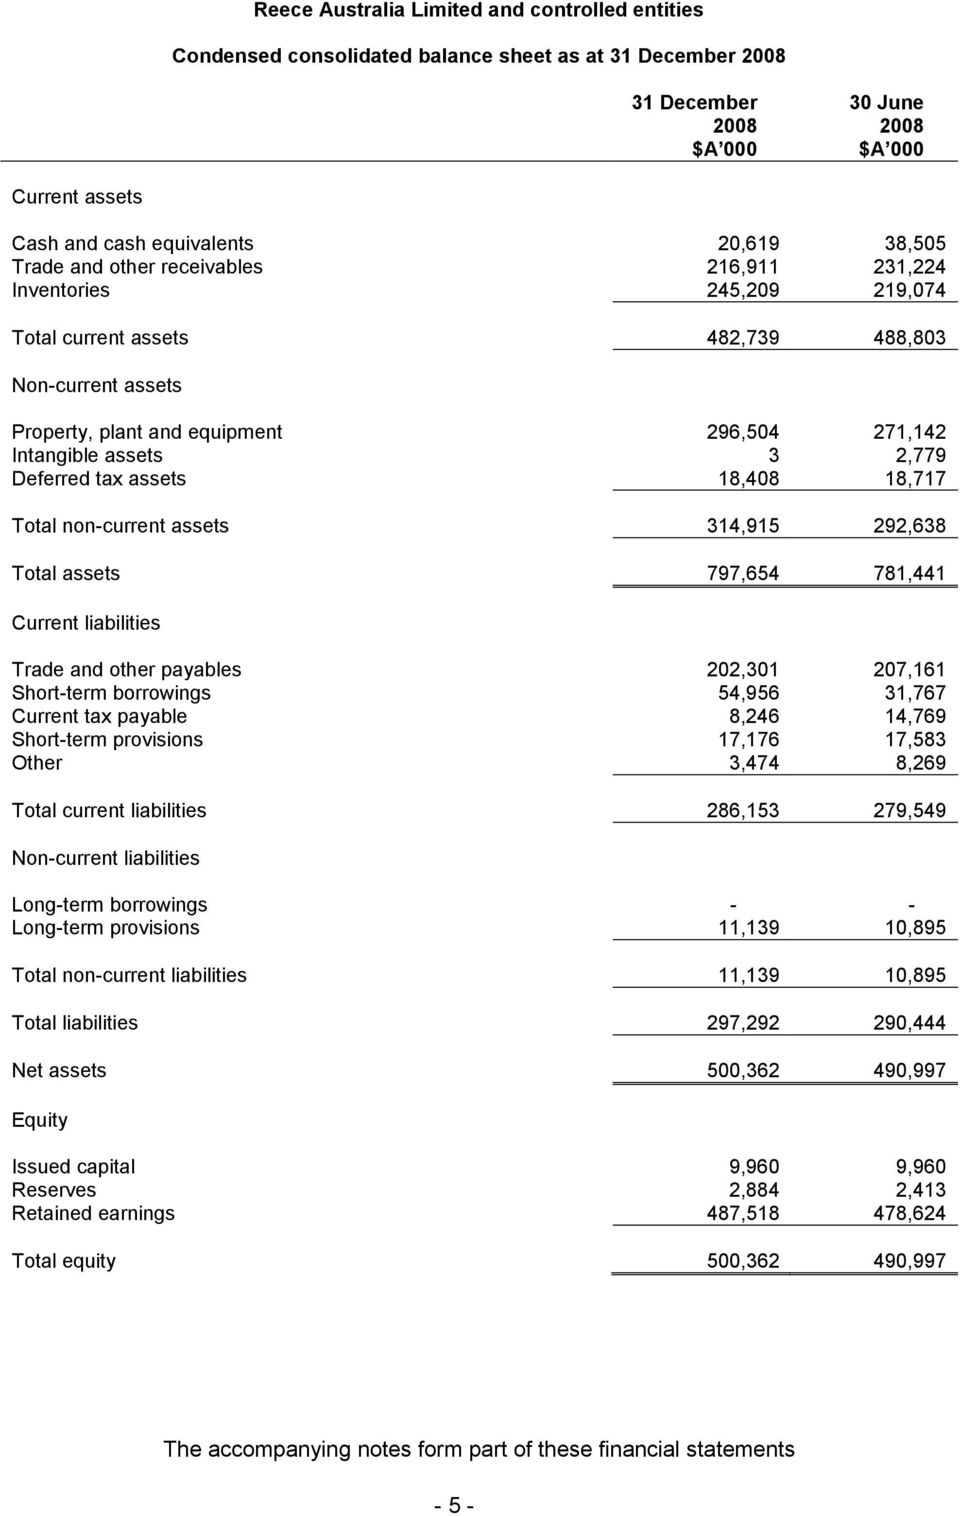 non-current assets 314,915 292,638 Total assets 797,654 781,441 Current liabilities Trade and other payables 202,301 207,161 Short-term borrowings 54,956 31,767 Current tax payable 8,246 14,769